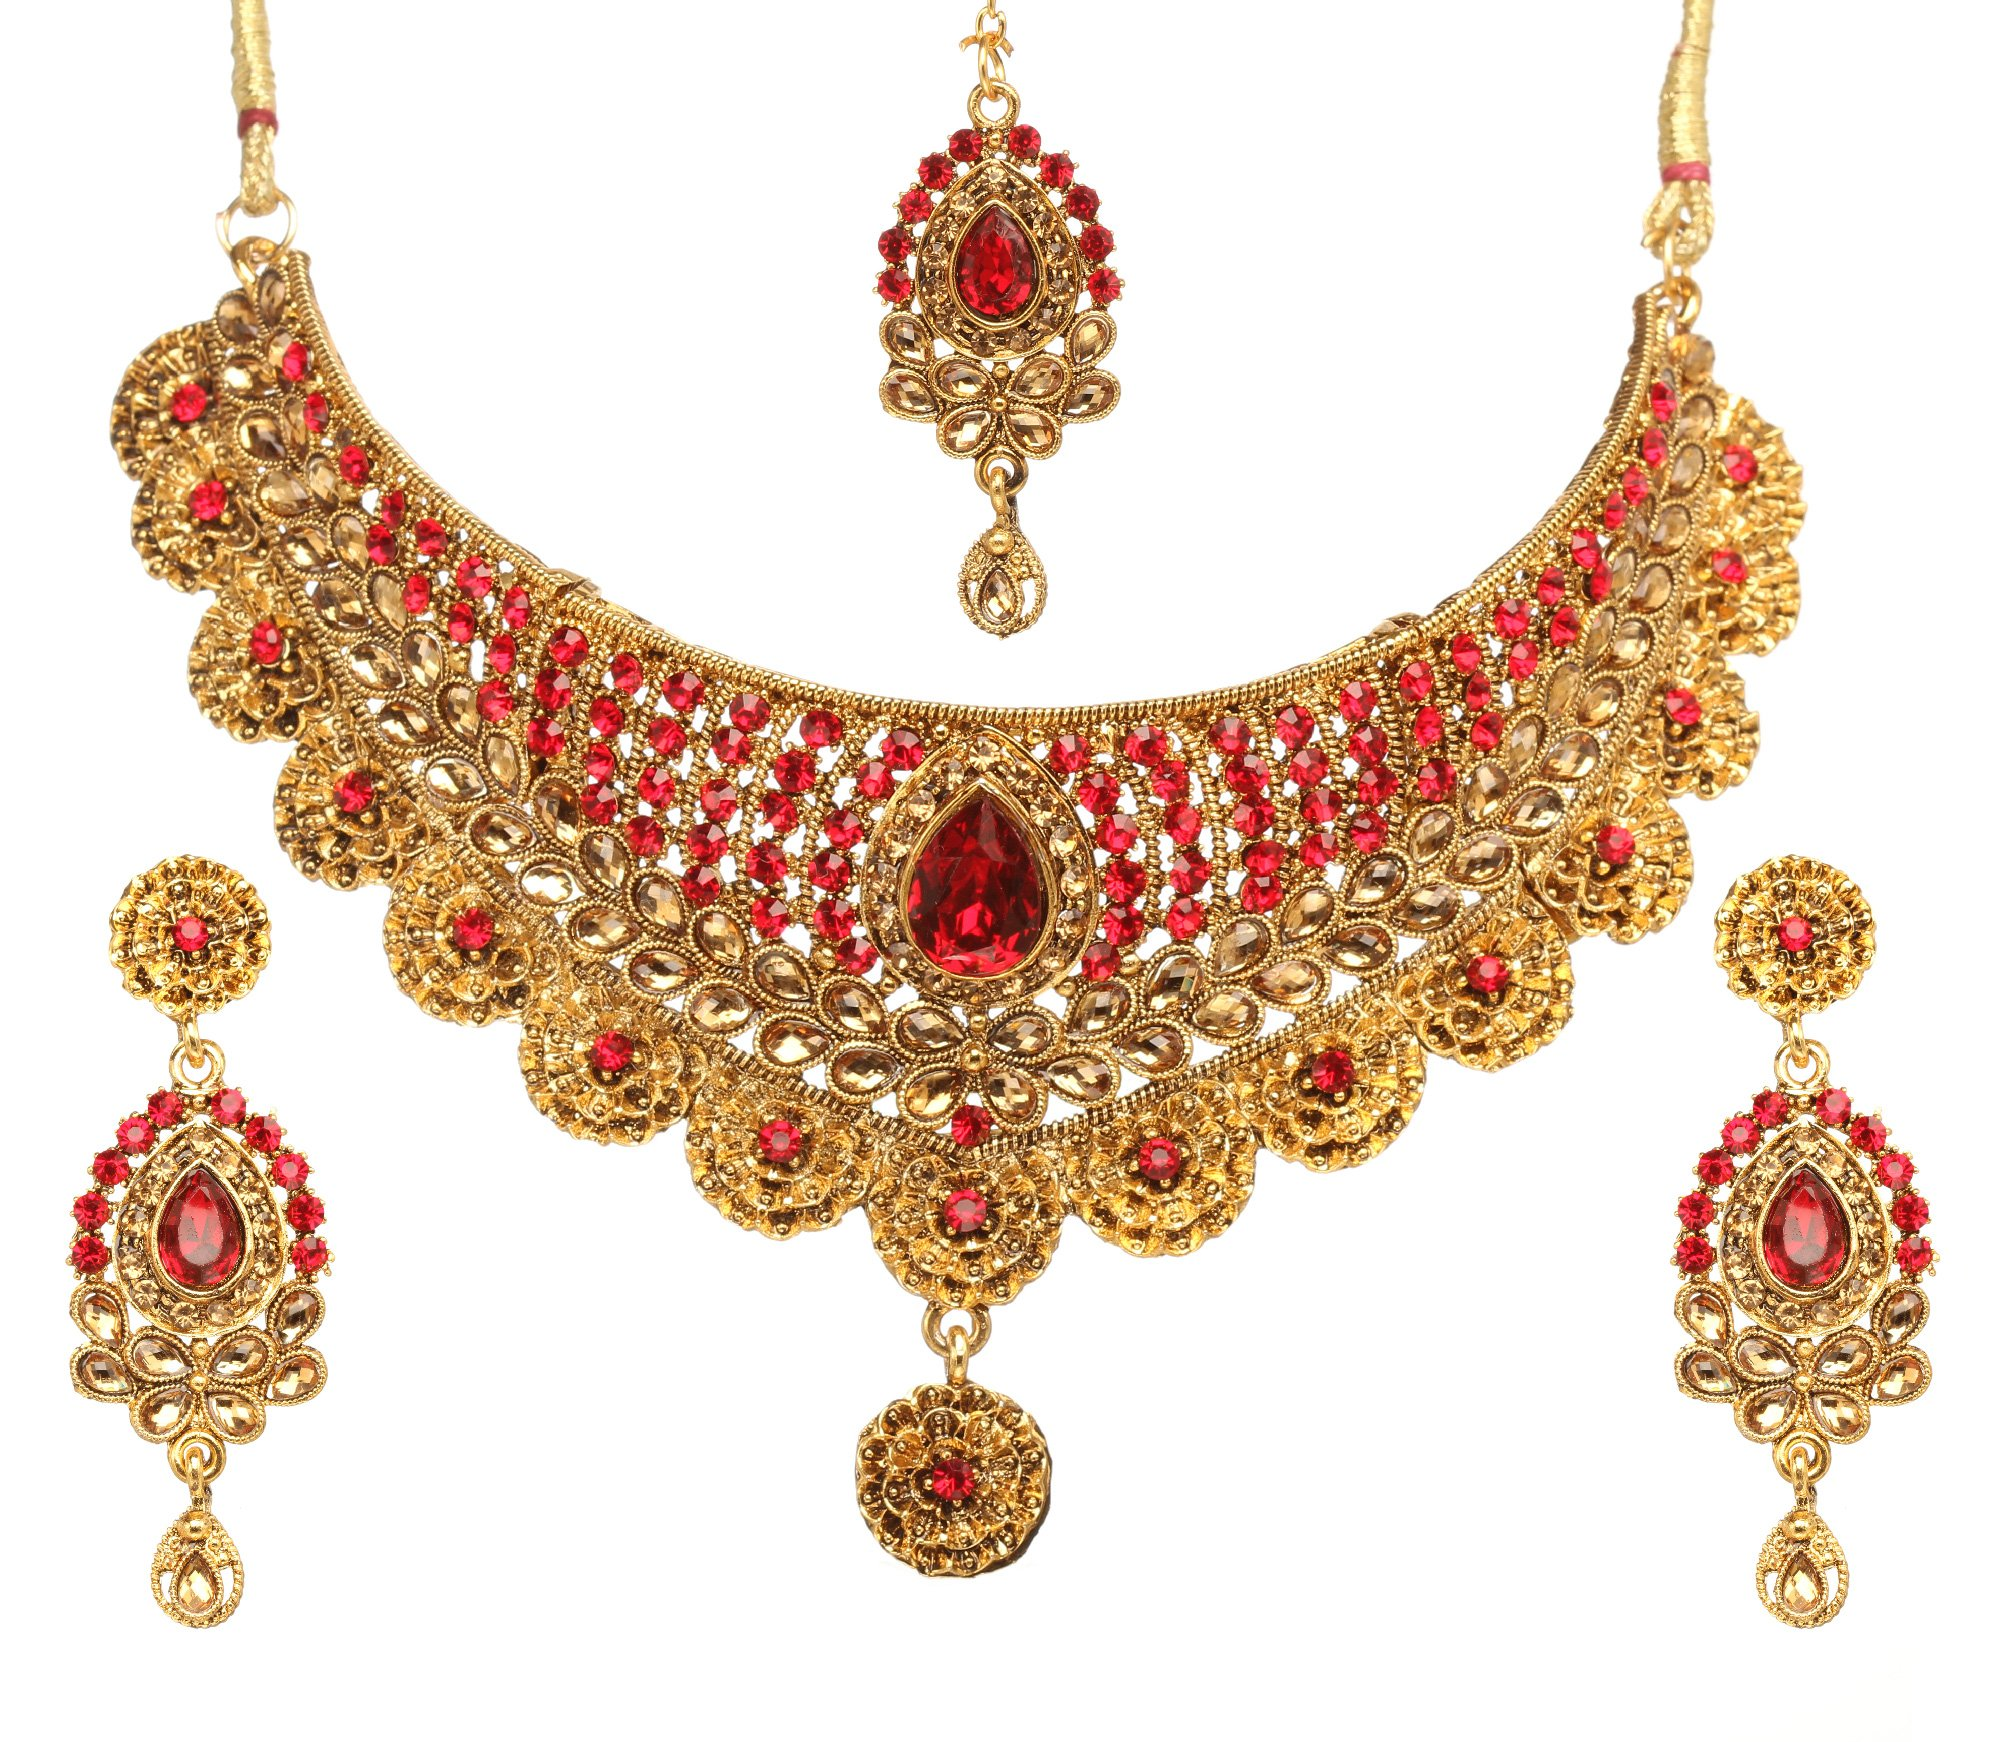 Bindhani Indian Bollywood Wedding Bridal Red Choker Necklace Earrings Tikka Jewelry Set for Women